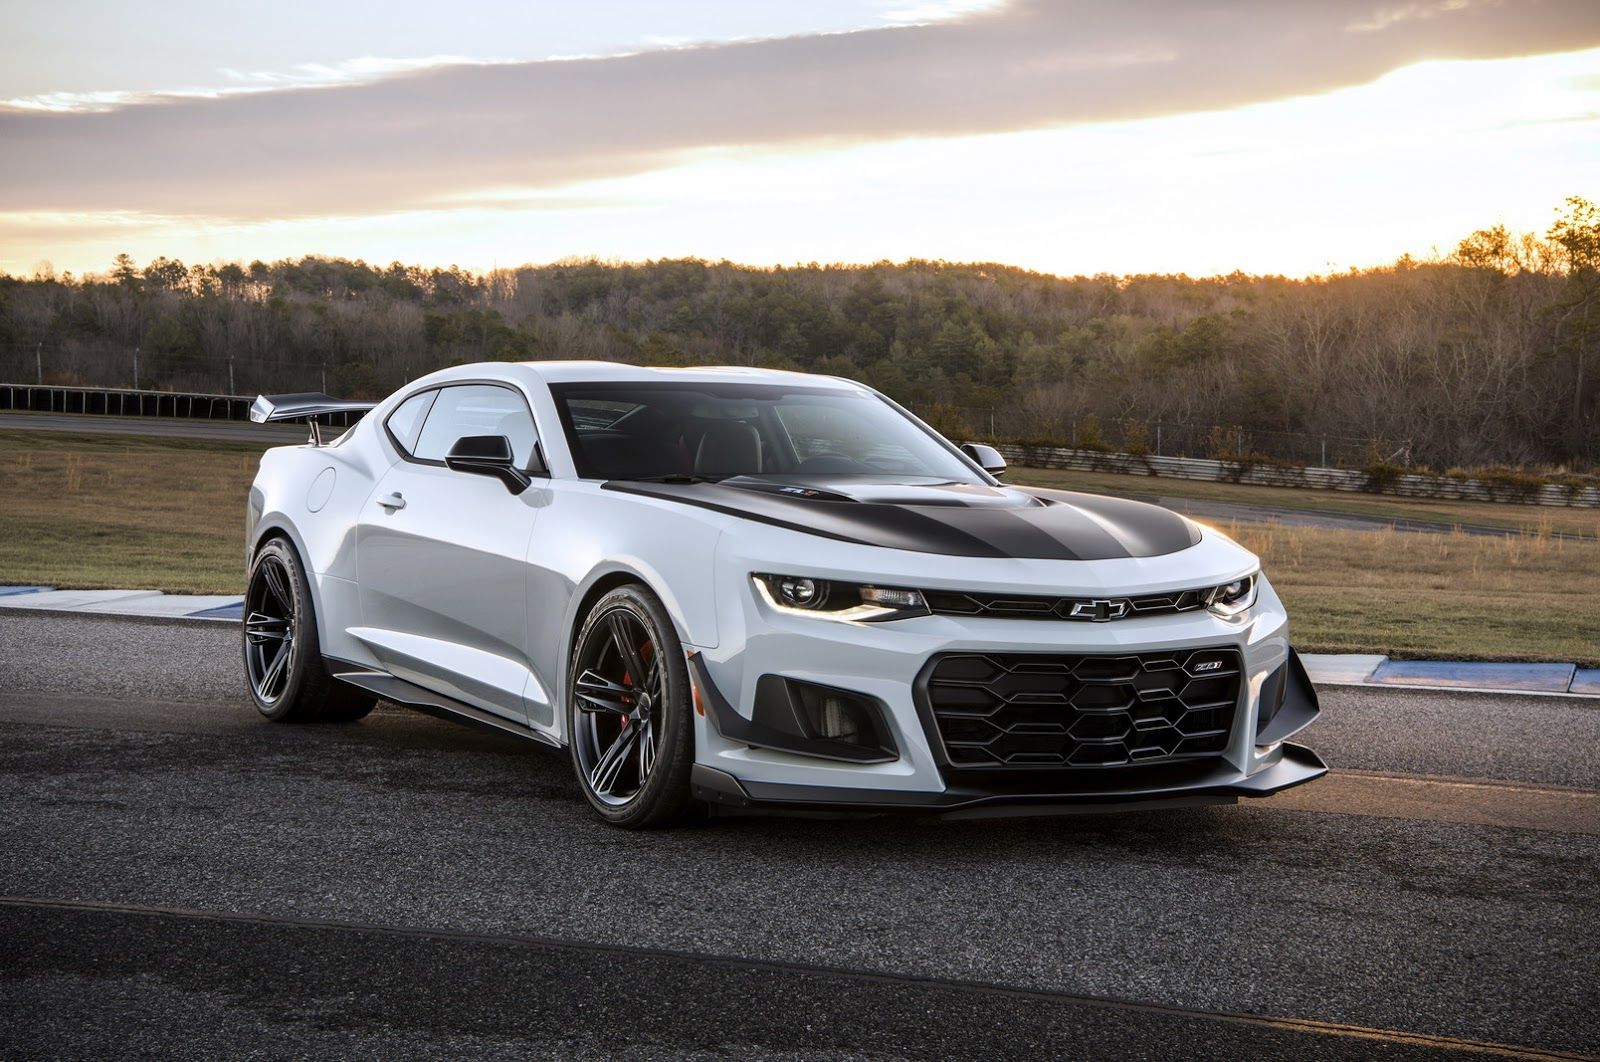 2017 chevrolet camaro zl1 does 0 60 mph in first gear with manual transmission autoevolution. Black Bedroom Furniture Sets. Home Design Ideas